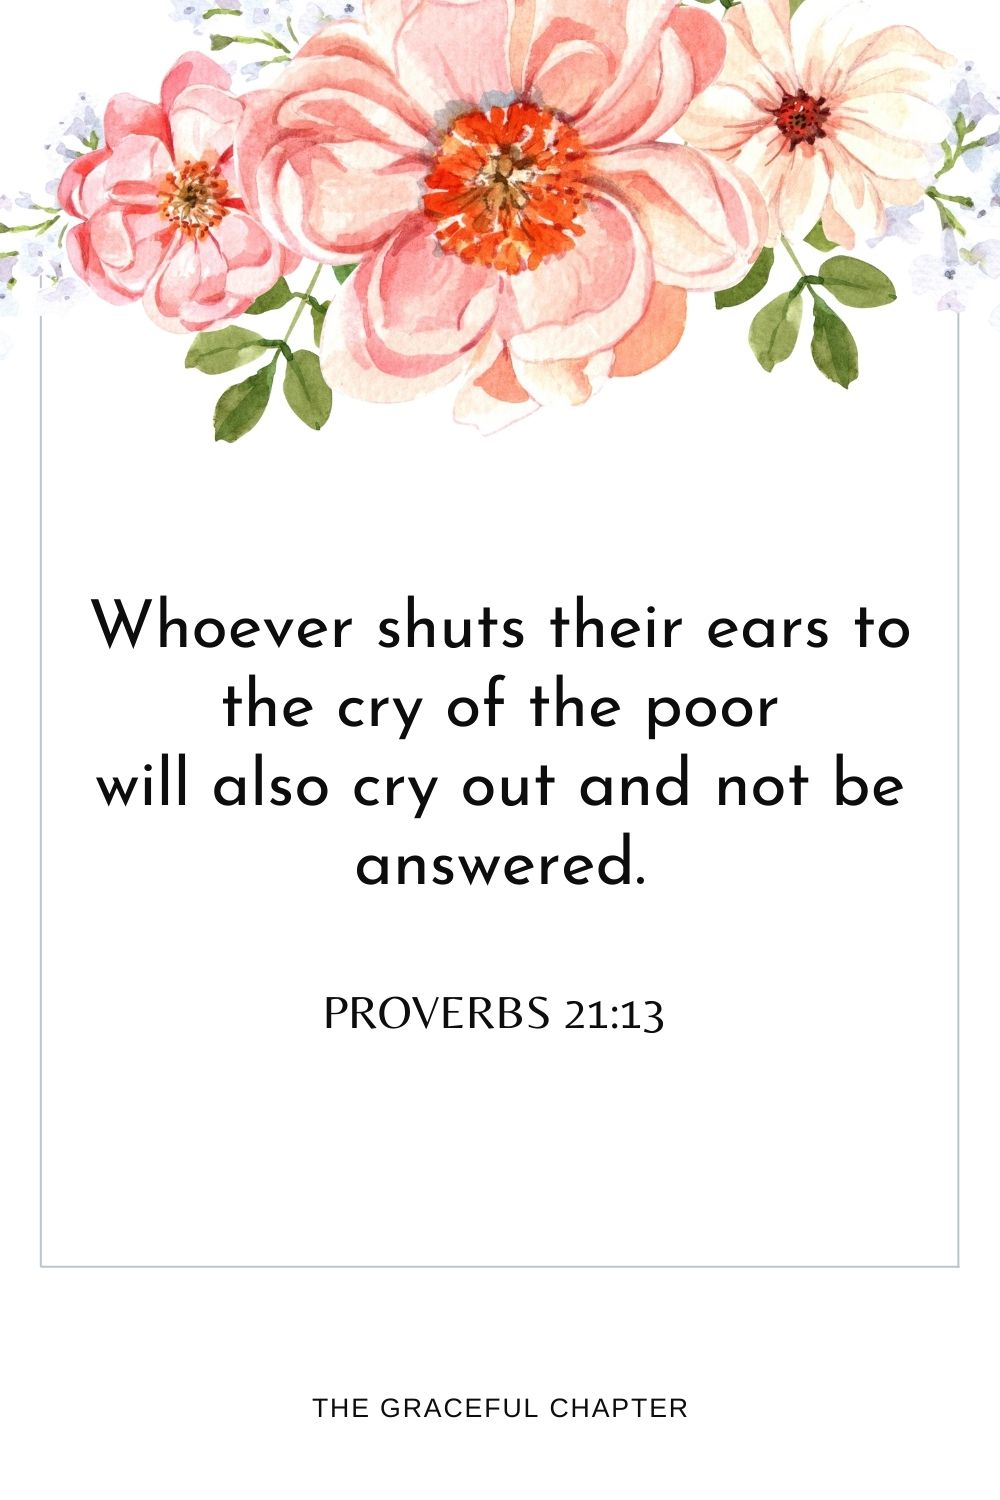 Whoever shuts their ears to the cry of the poor will also cry outand not be answered. Proverbs 21:13